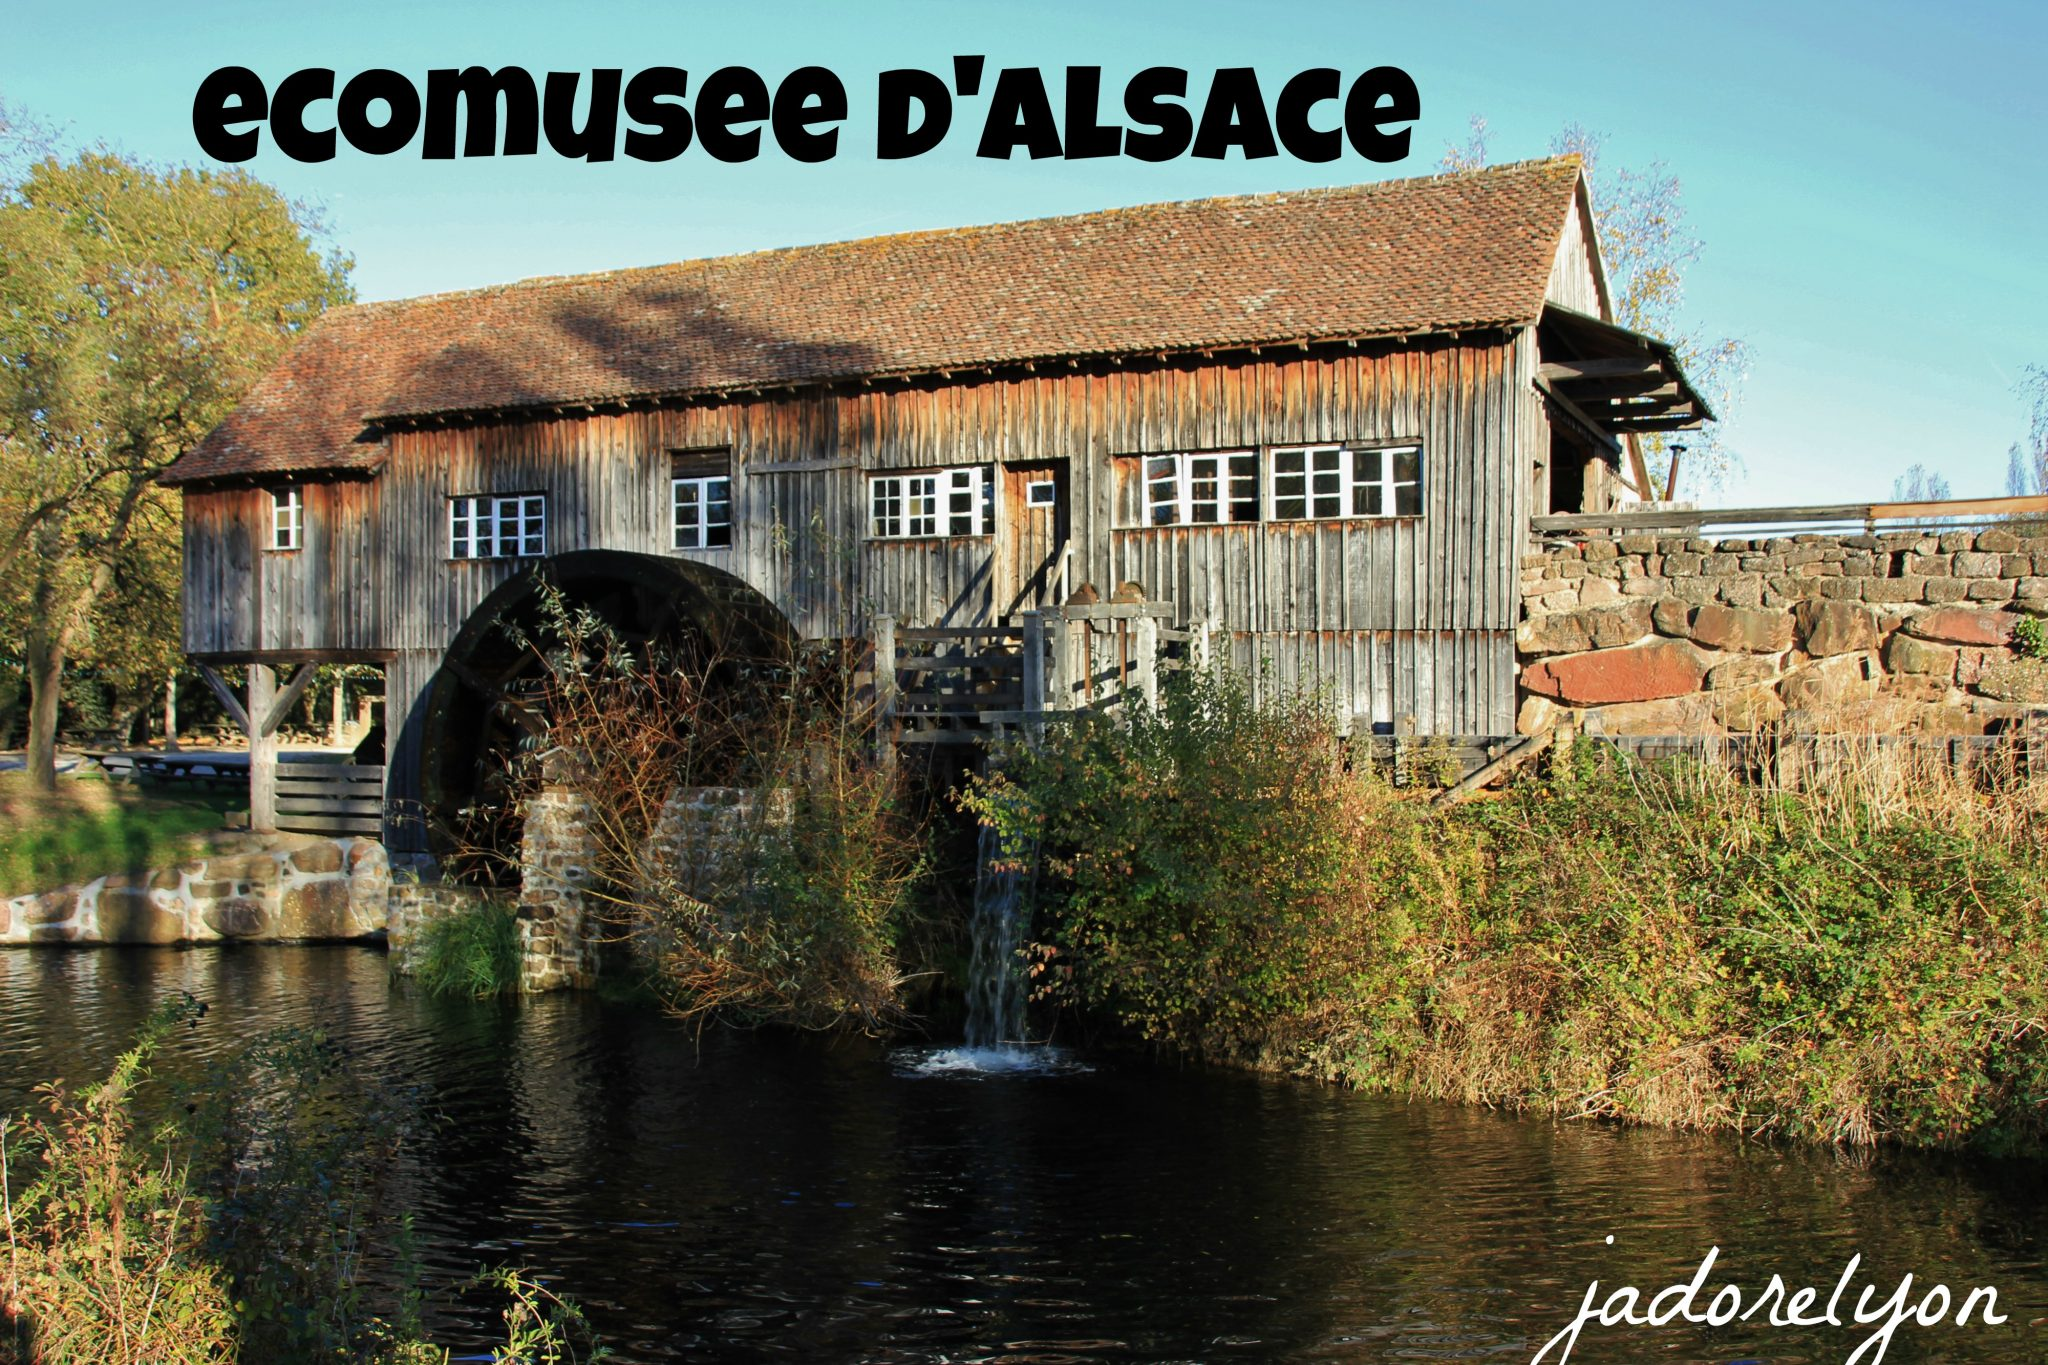 Ecomusee d'alsace in Ungersheim